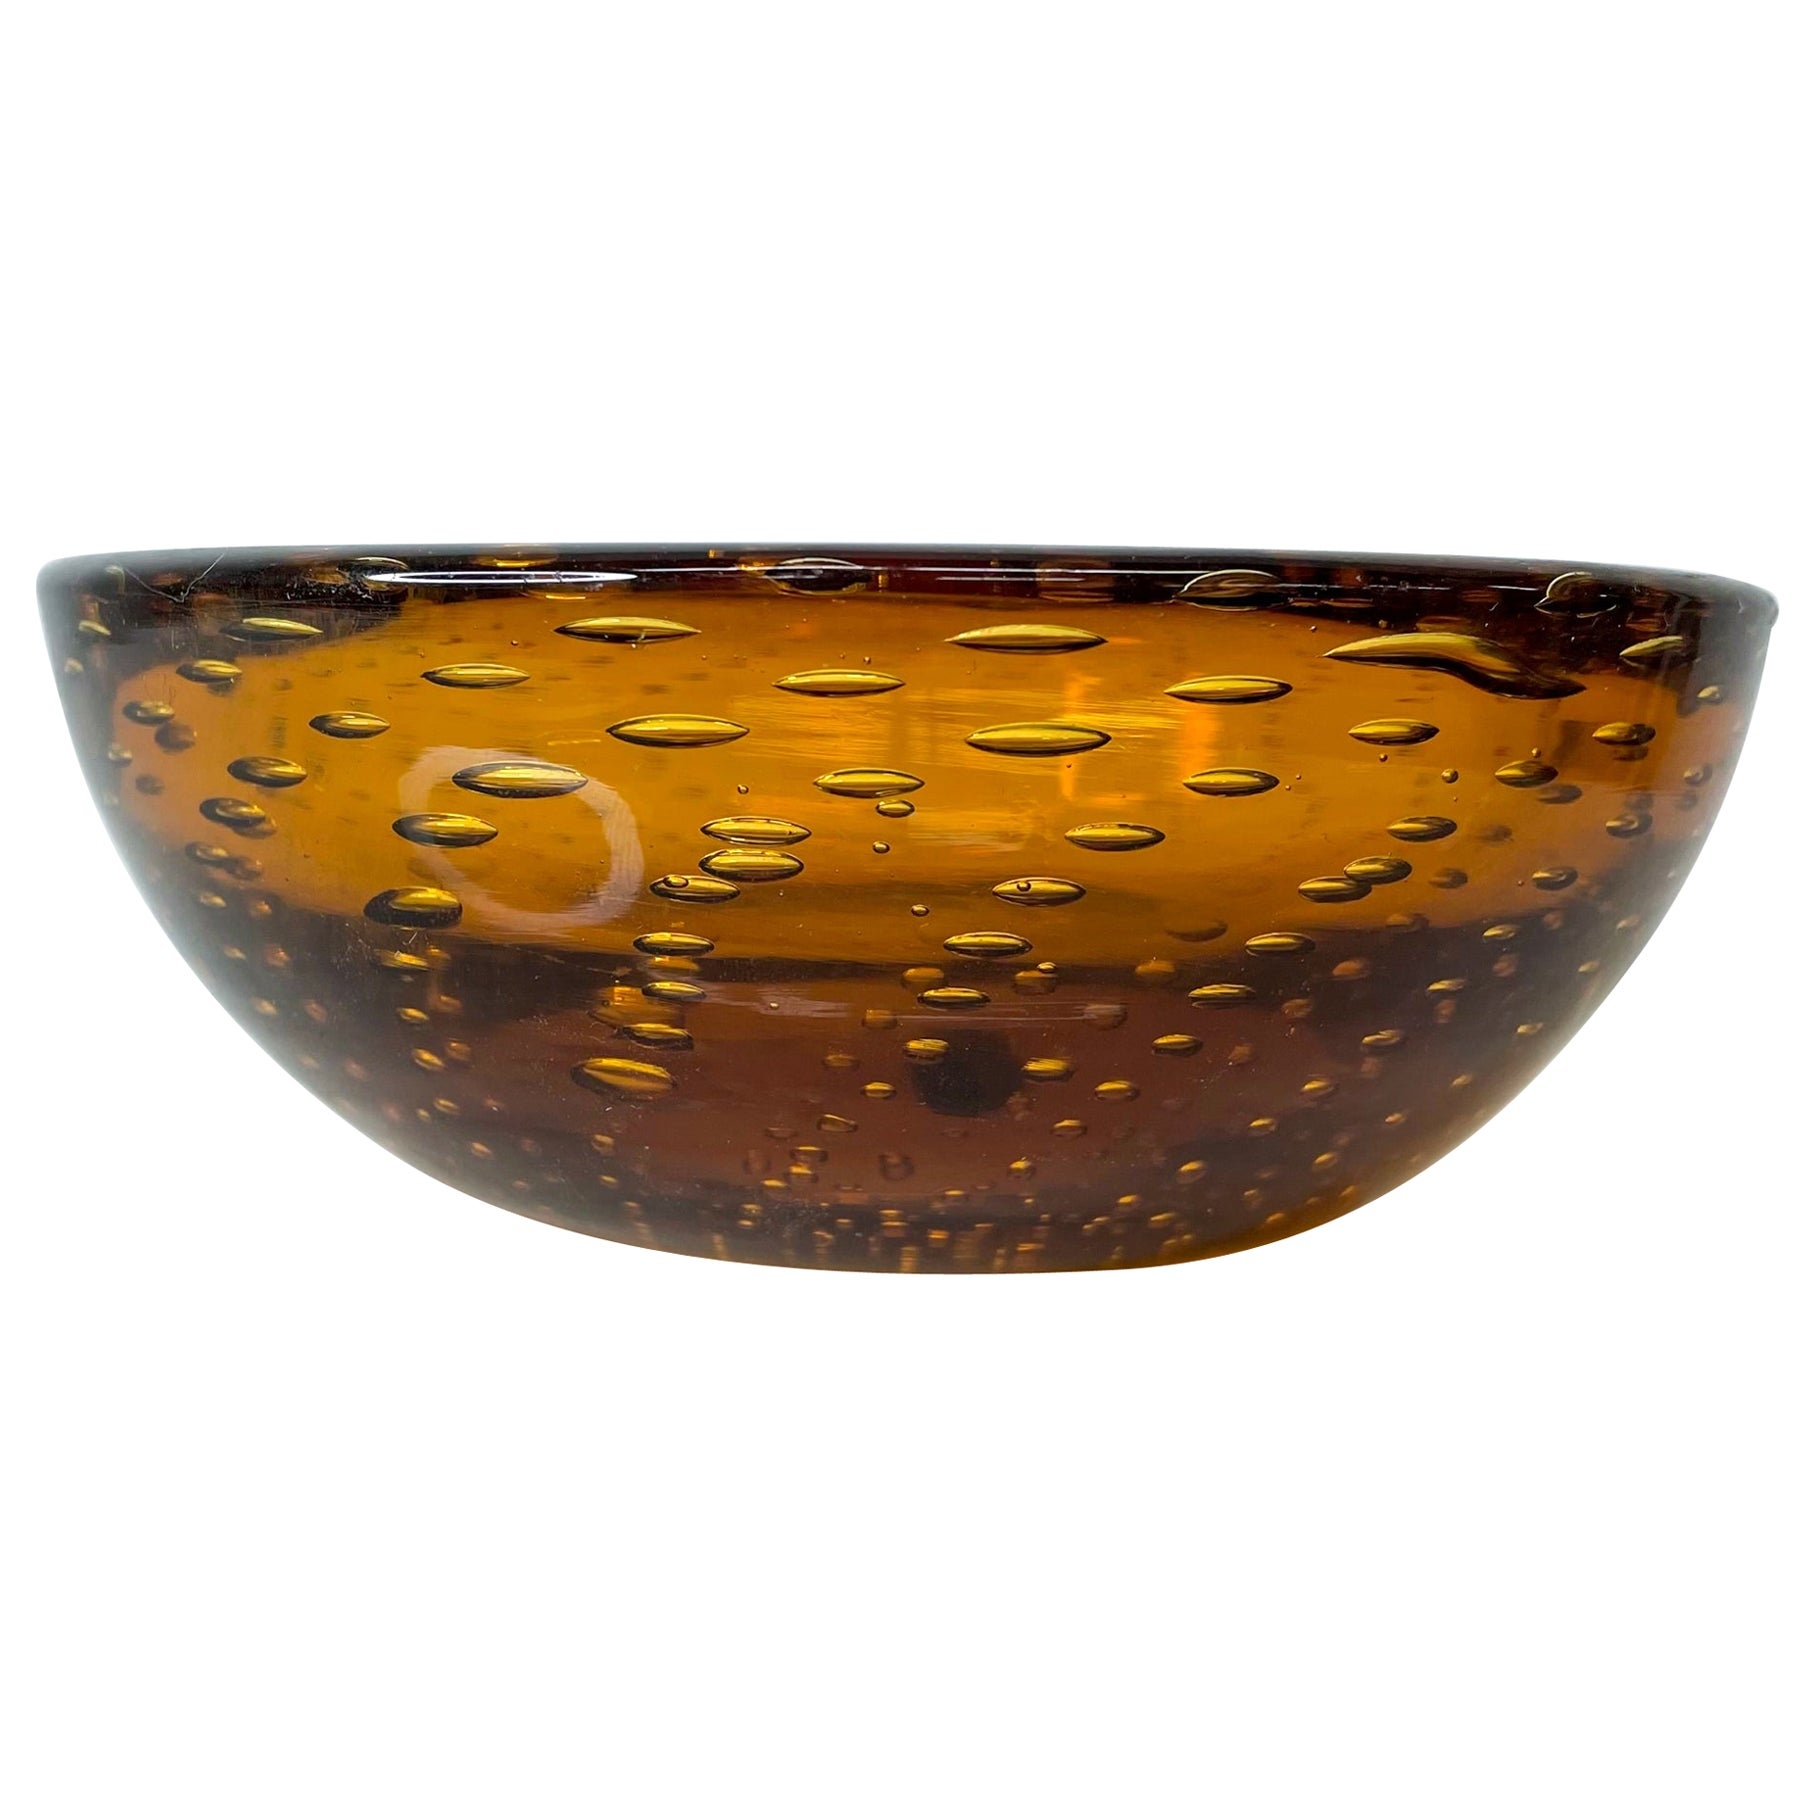 Modern Murano Art Glass Bowl in Amber Controlled Bubble, Italy 1970s